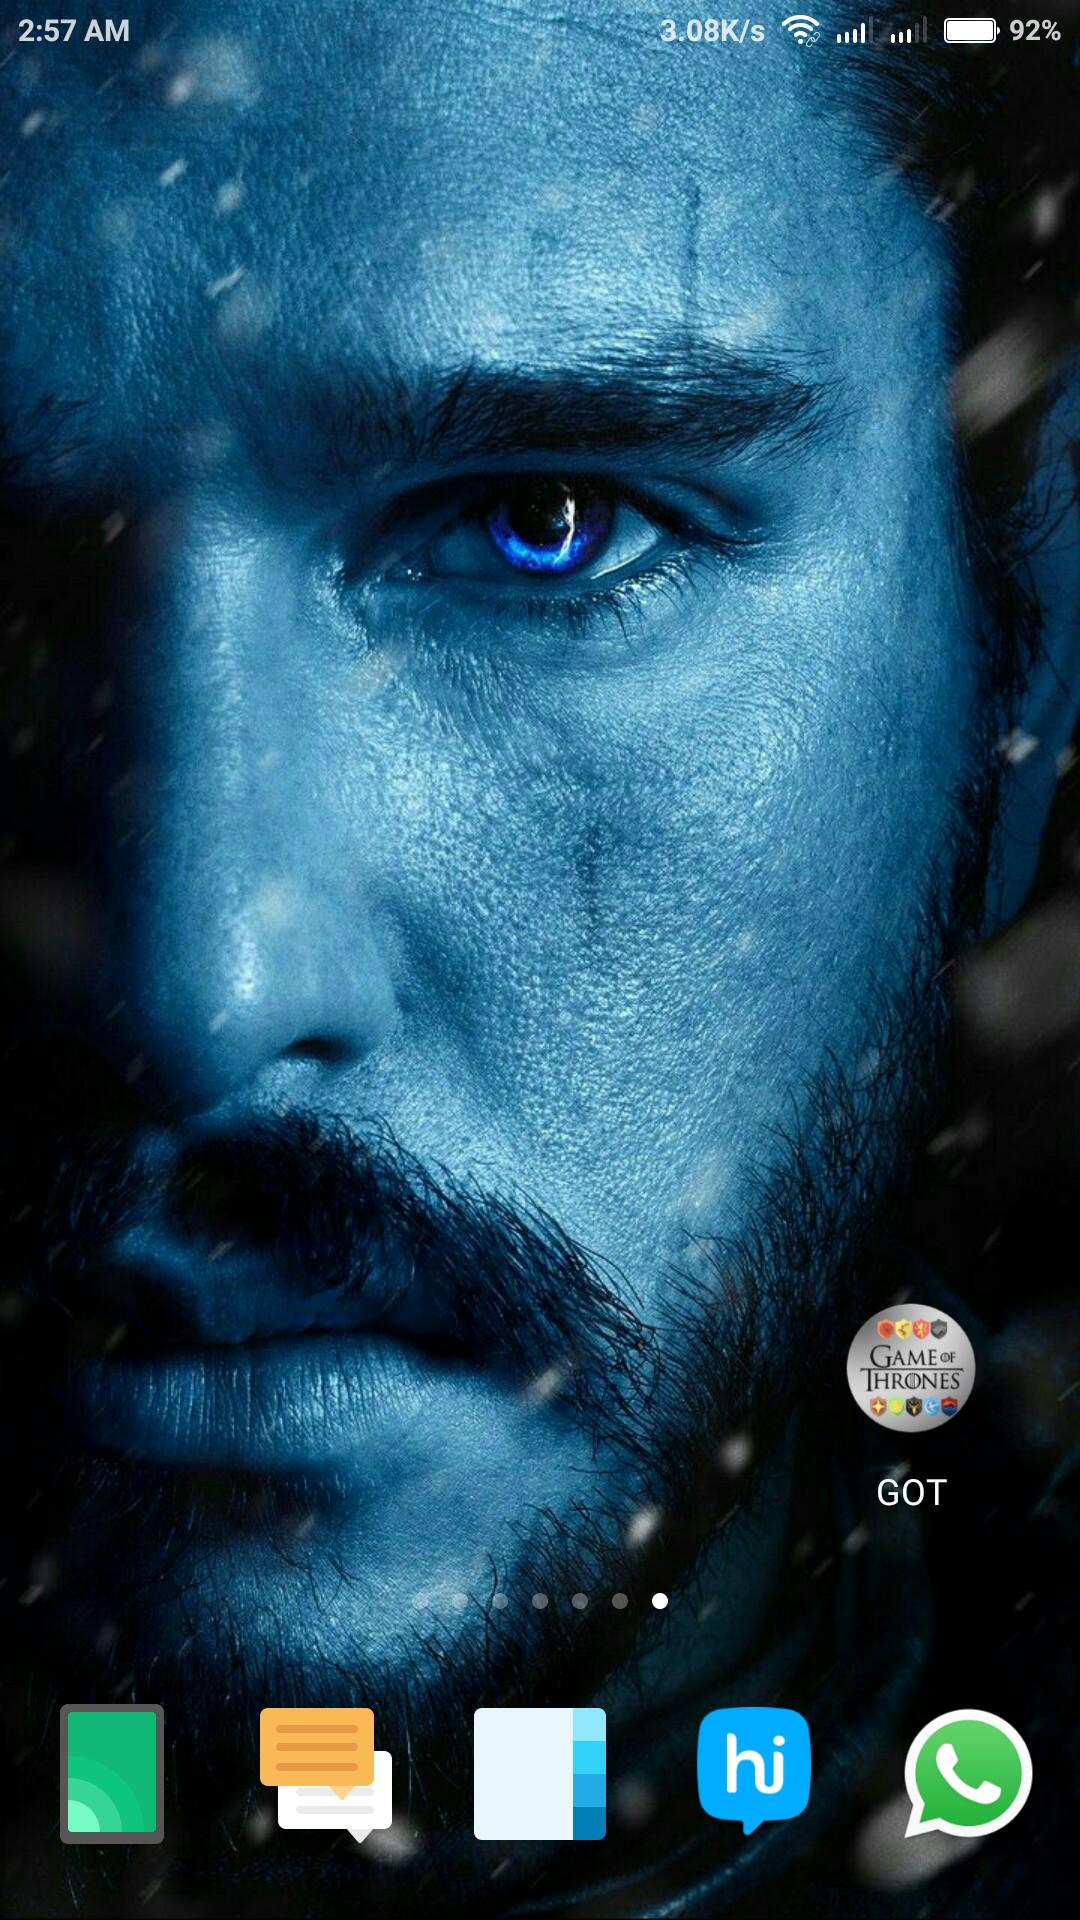 Download 5500 Wallpaper Android Game Of Thrones Gratis Terbaik